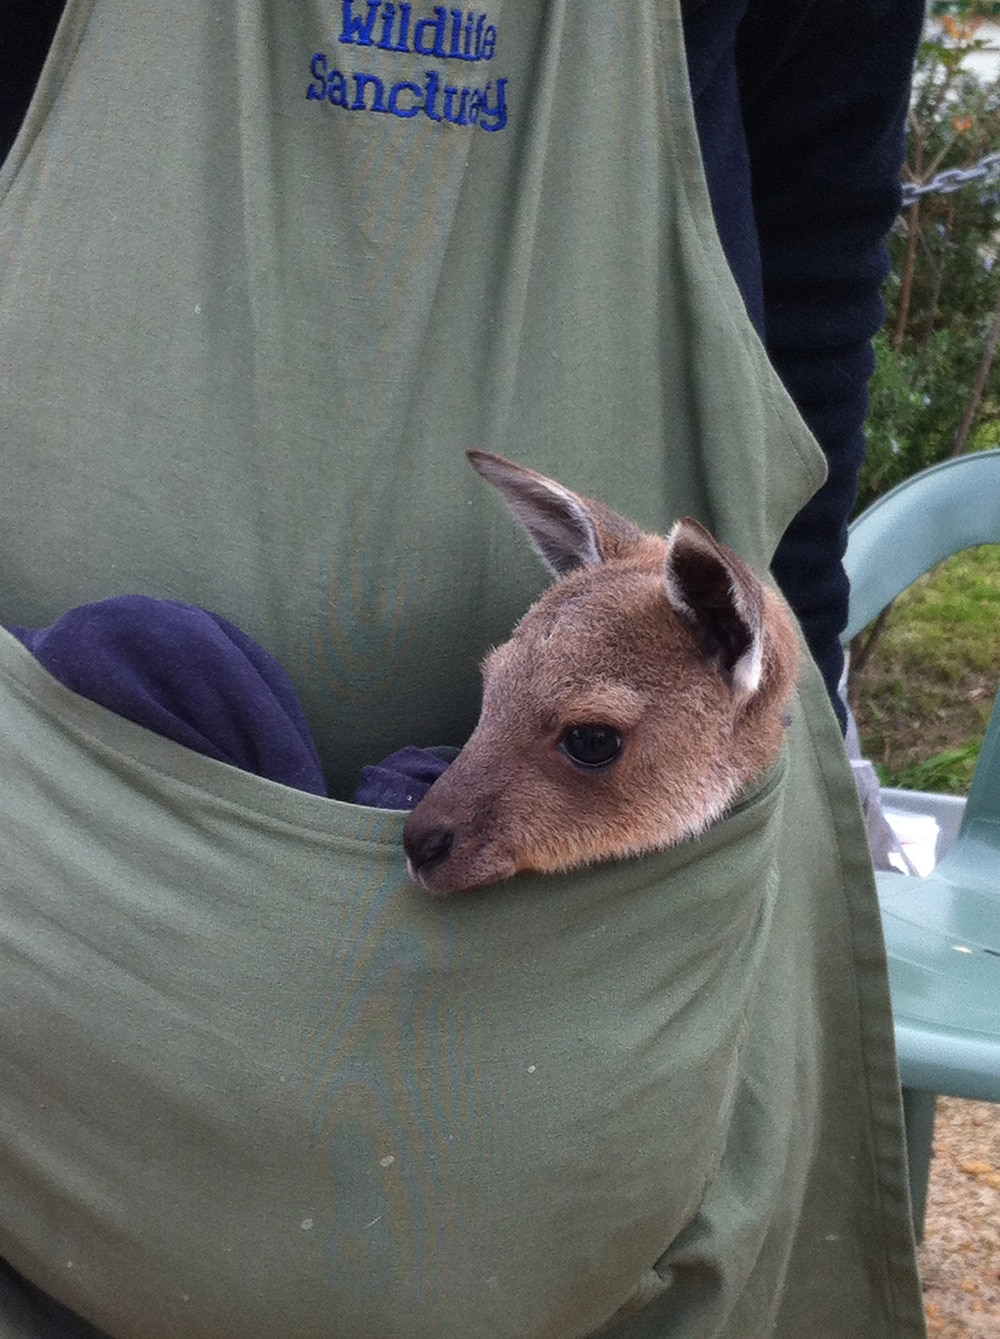 Baby Kangaroo (Joey) in Volunteer's pouch in Australia